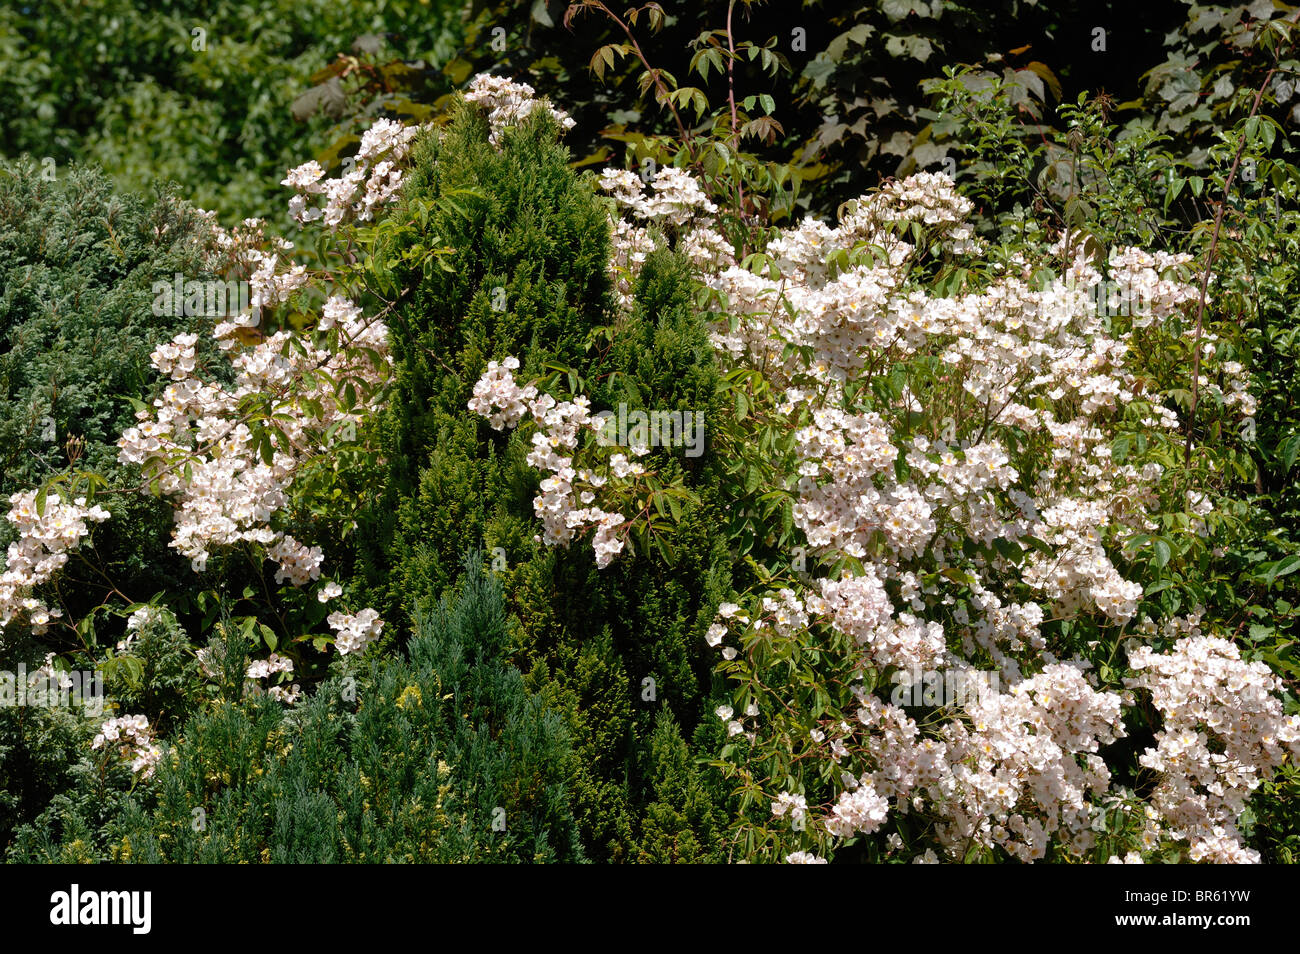 Rosa filipes 'Kiftsgate' climbing rose drifting over ornamental conifers - Stock Image